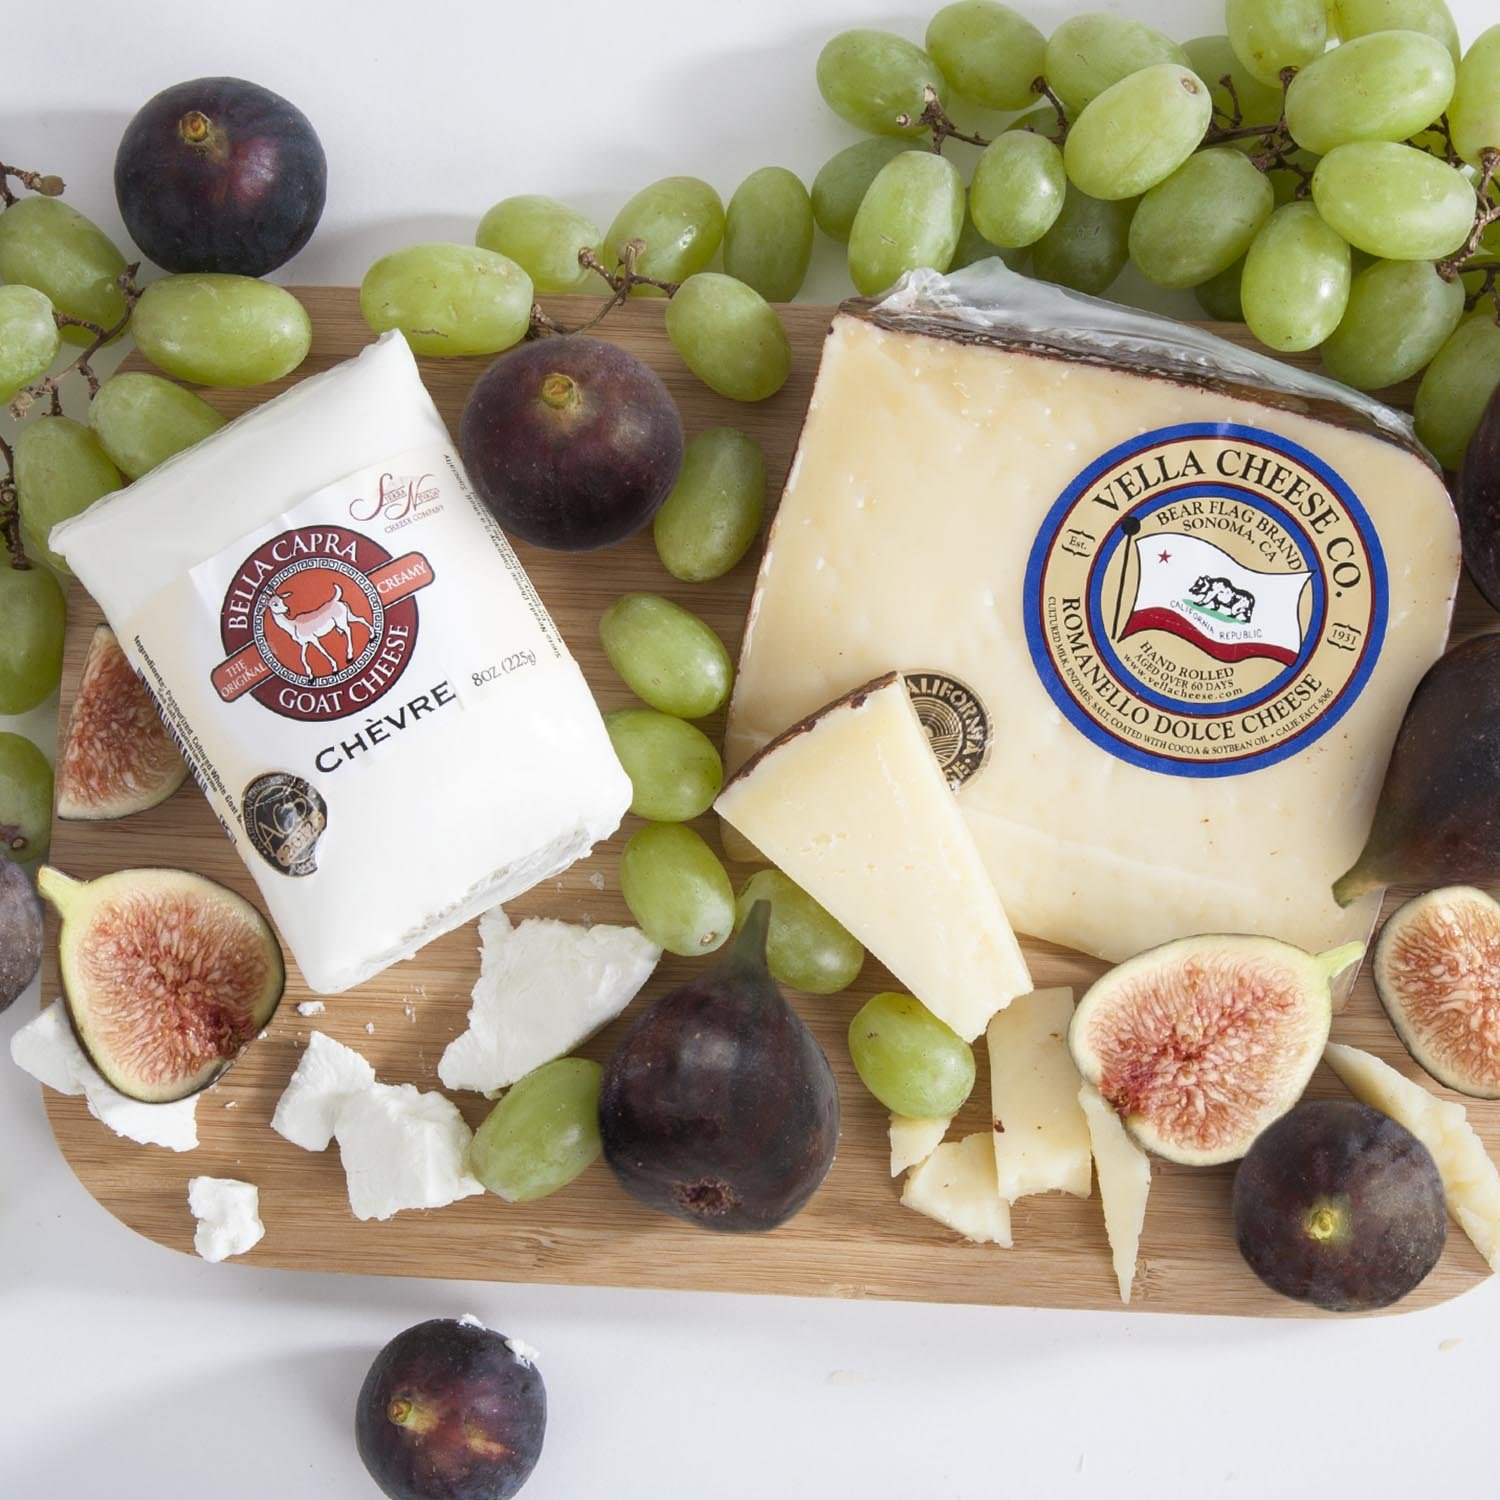 Golden State Fruit Monthly Fruit and Cheese Club (Premium Version) - 3 Month Club by Golden State Fruit (Image #2)